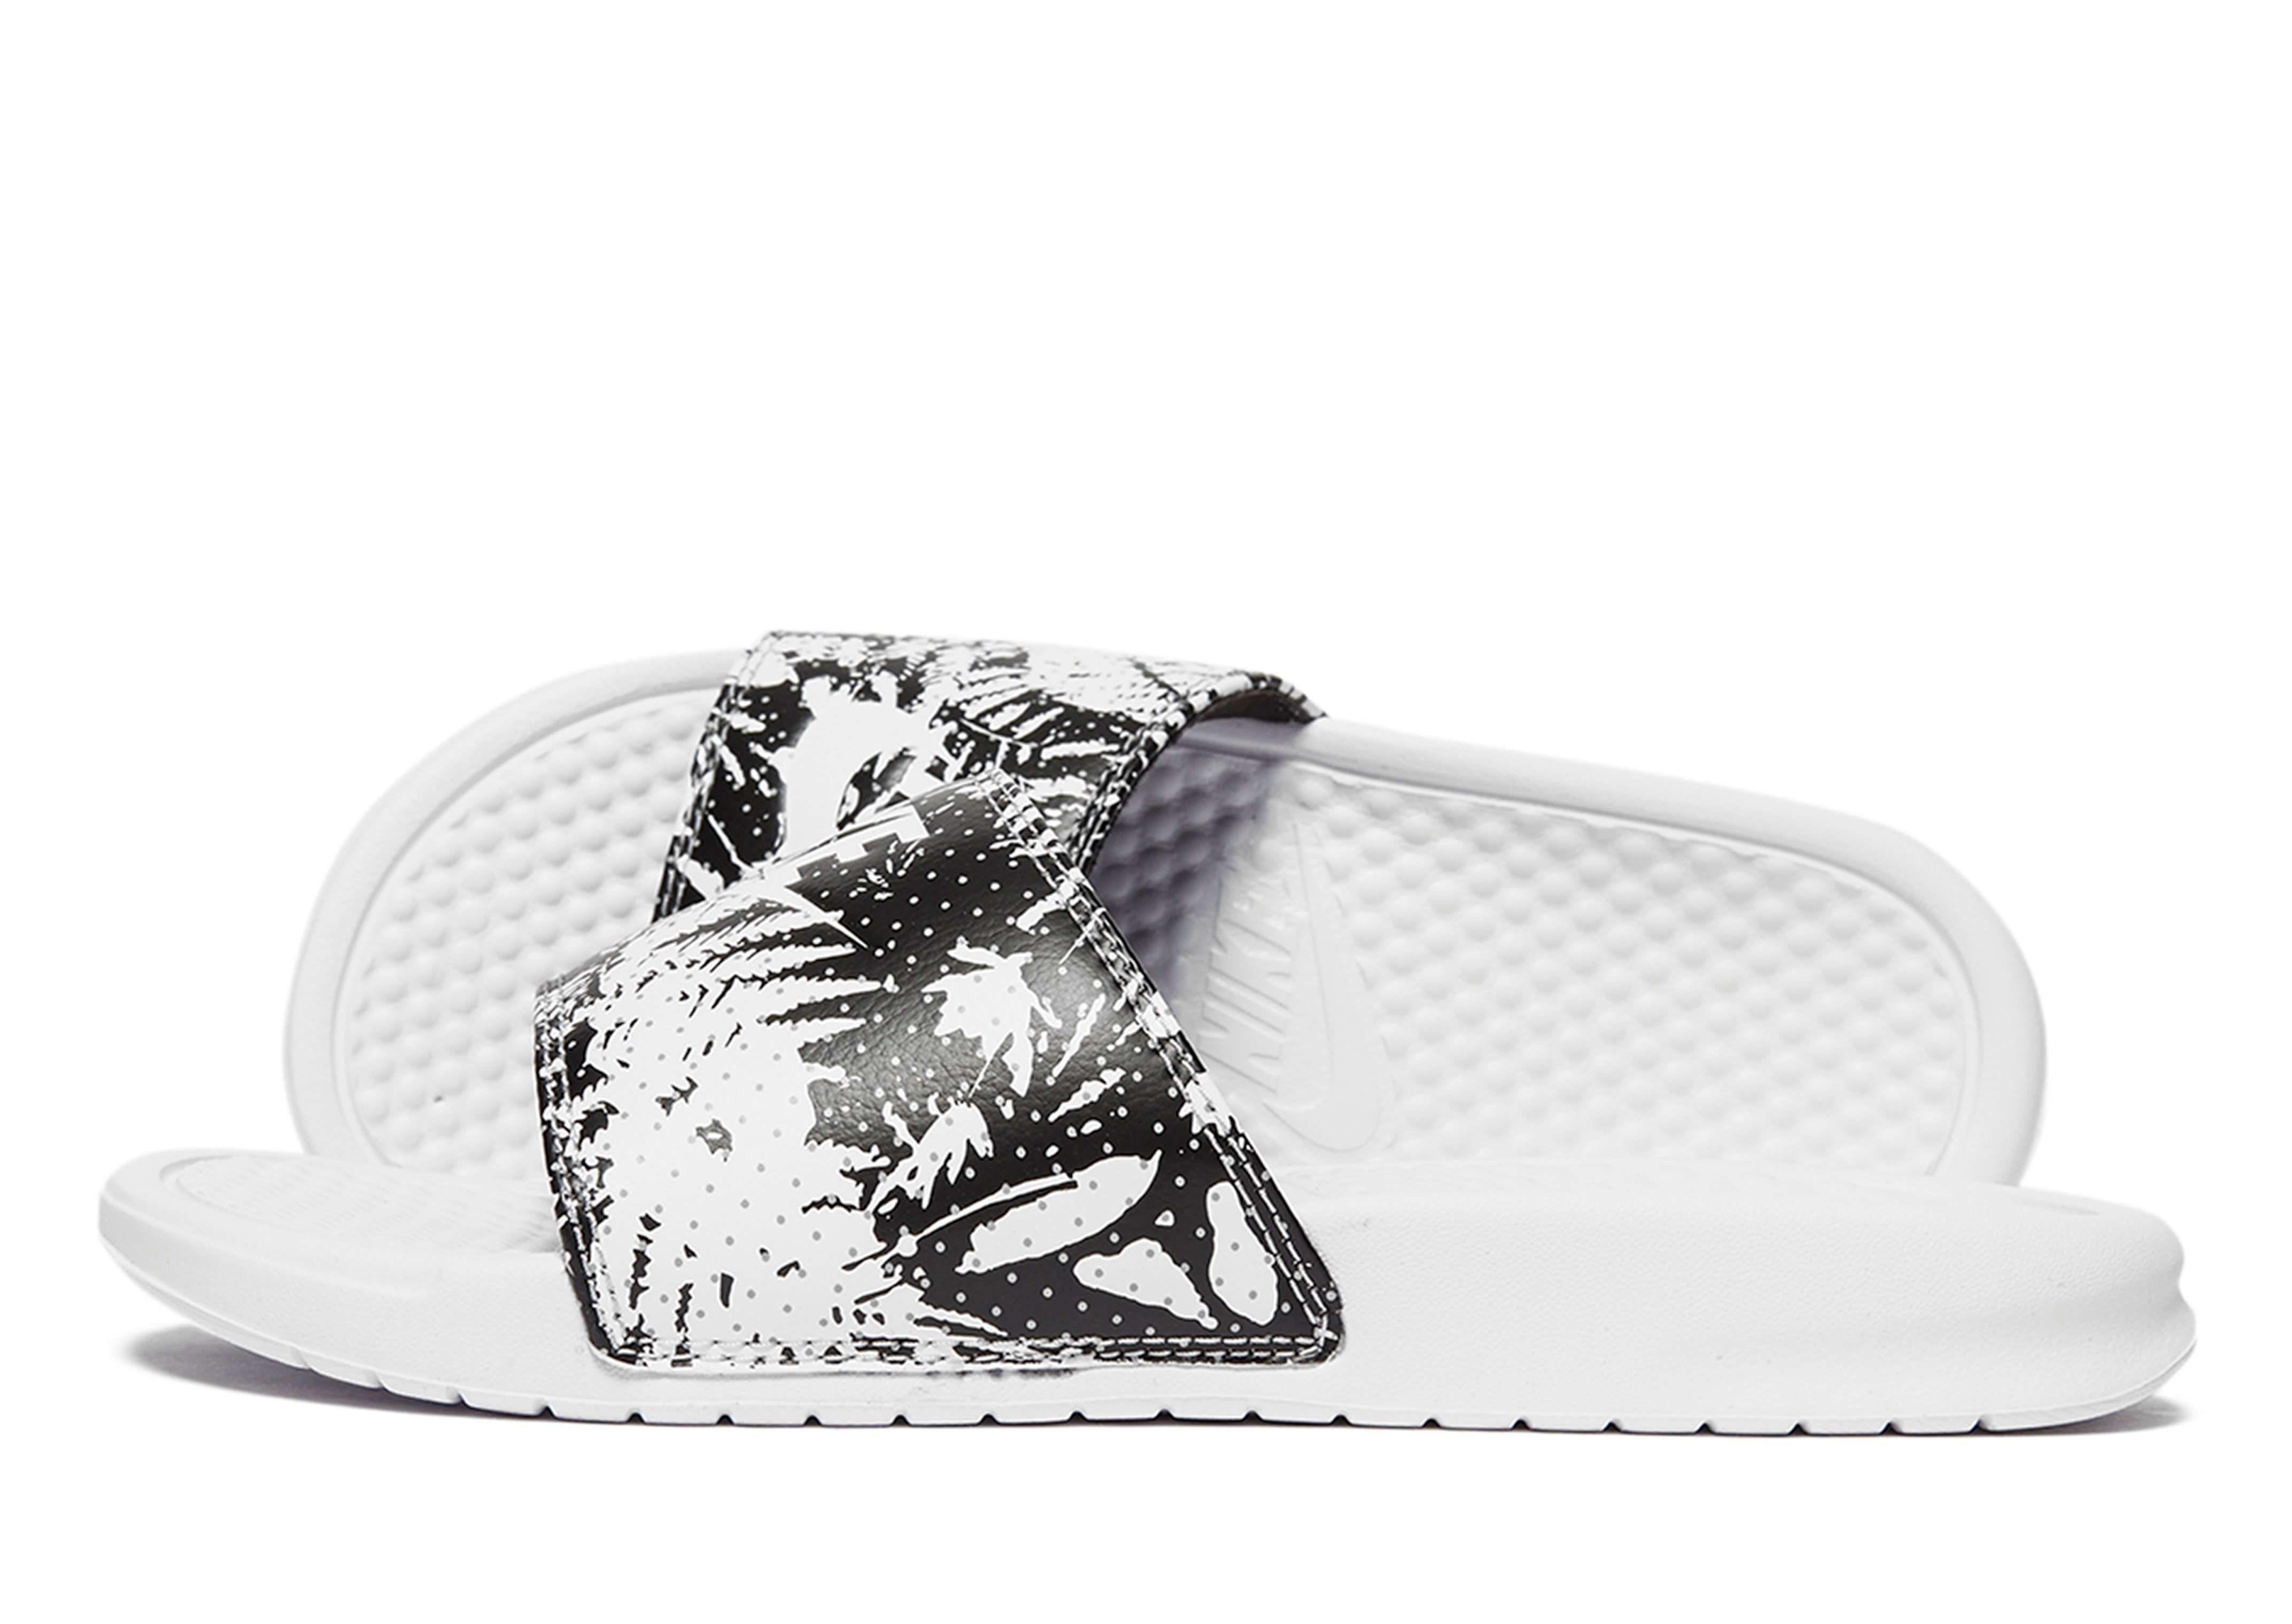 fef733a49909 Nike Benassi Just Do It Print Slides Women s - Shop online for Nike Benassi  Just Do It Print Slides Women s with JD Sports